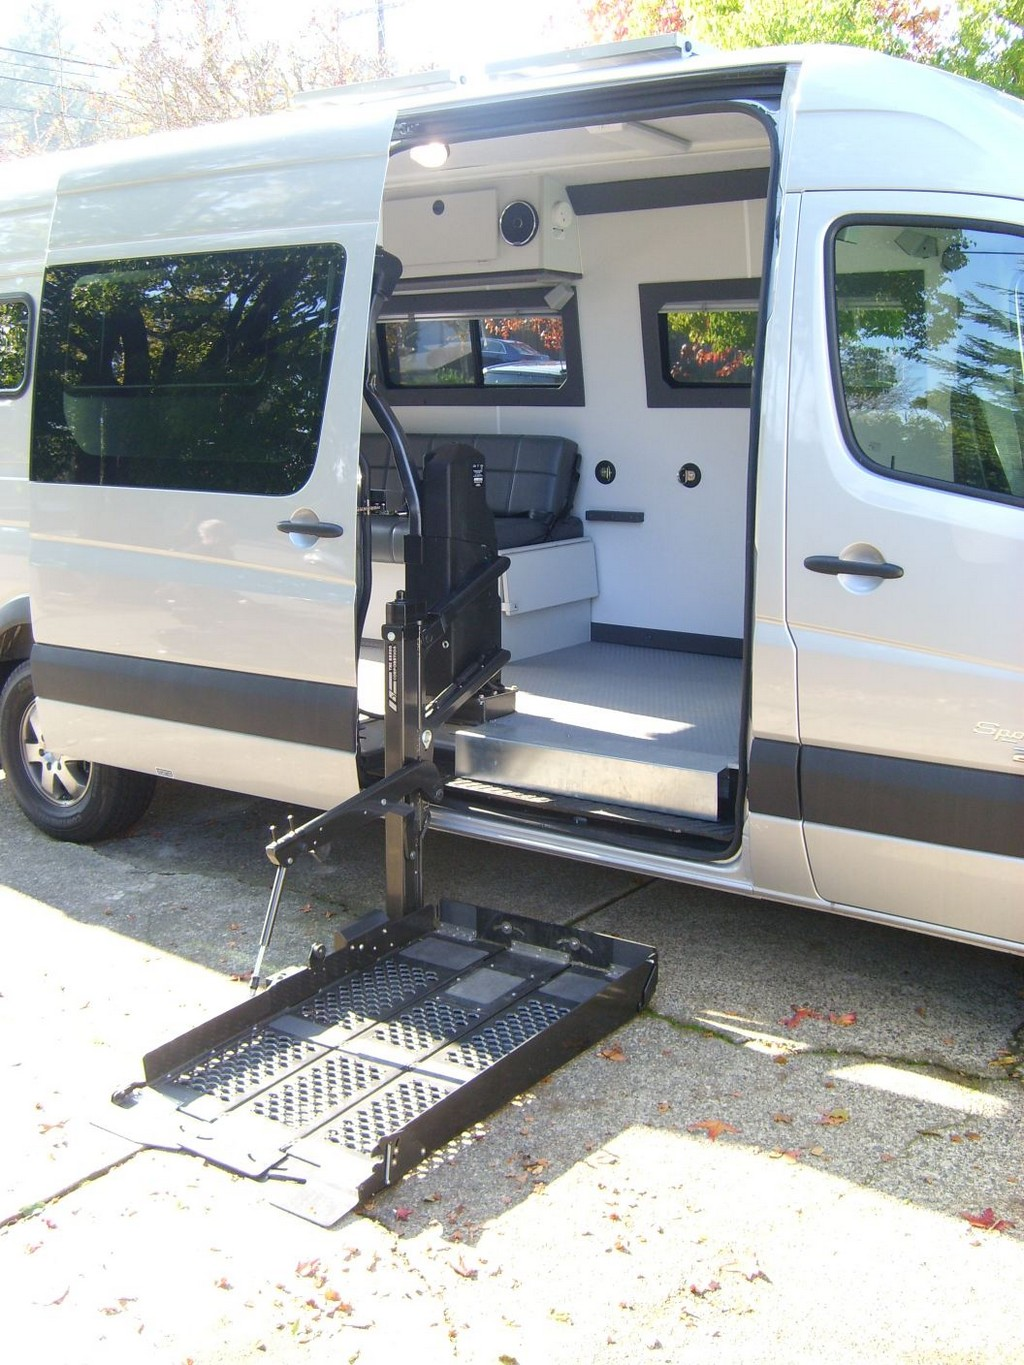 buy sell used wheelchair lifts, wheel chair stair lift, wheelchair lifts jax fl, cables for wheelchair lift